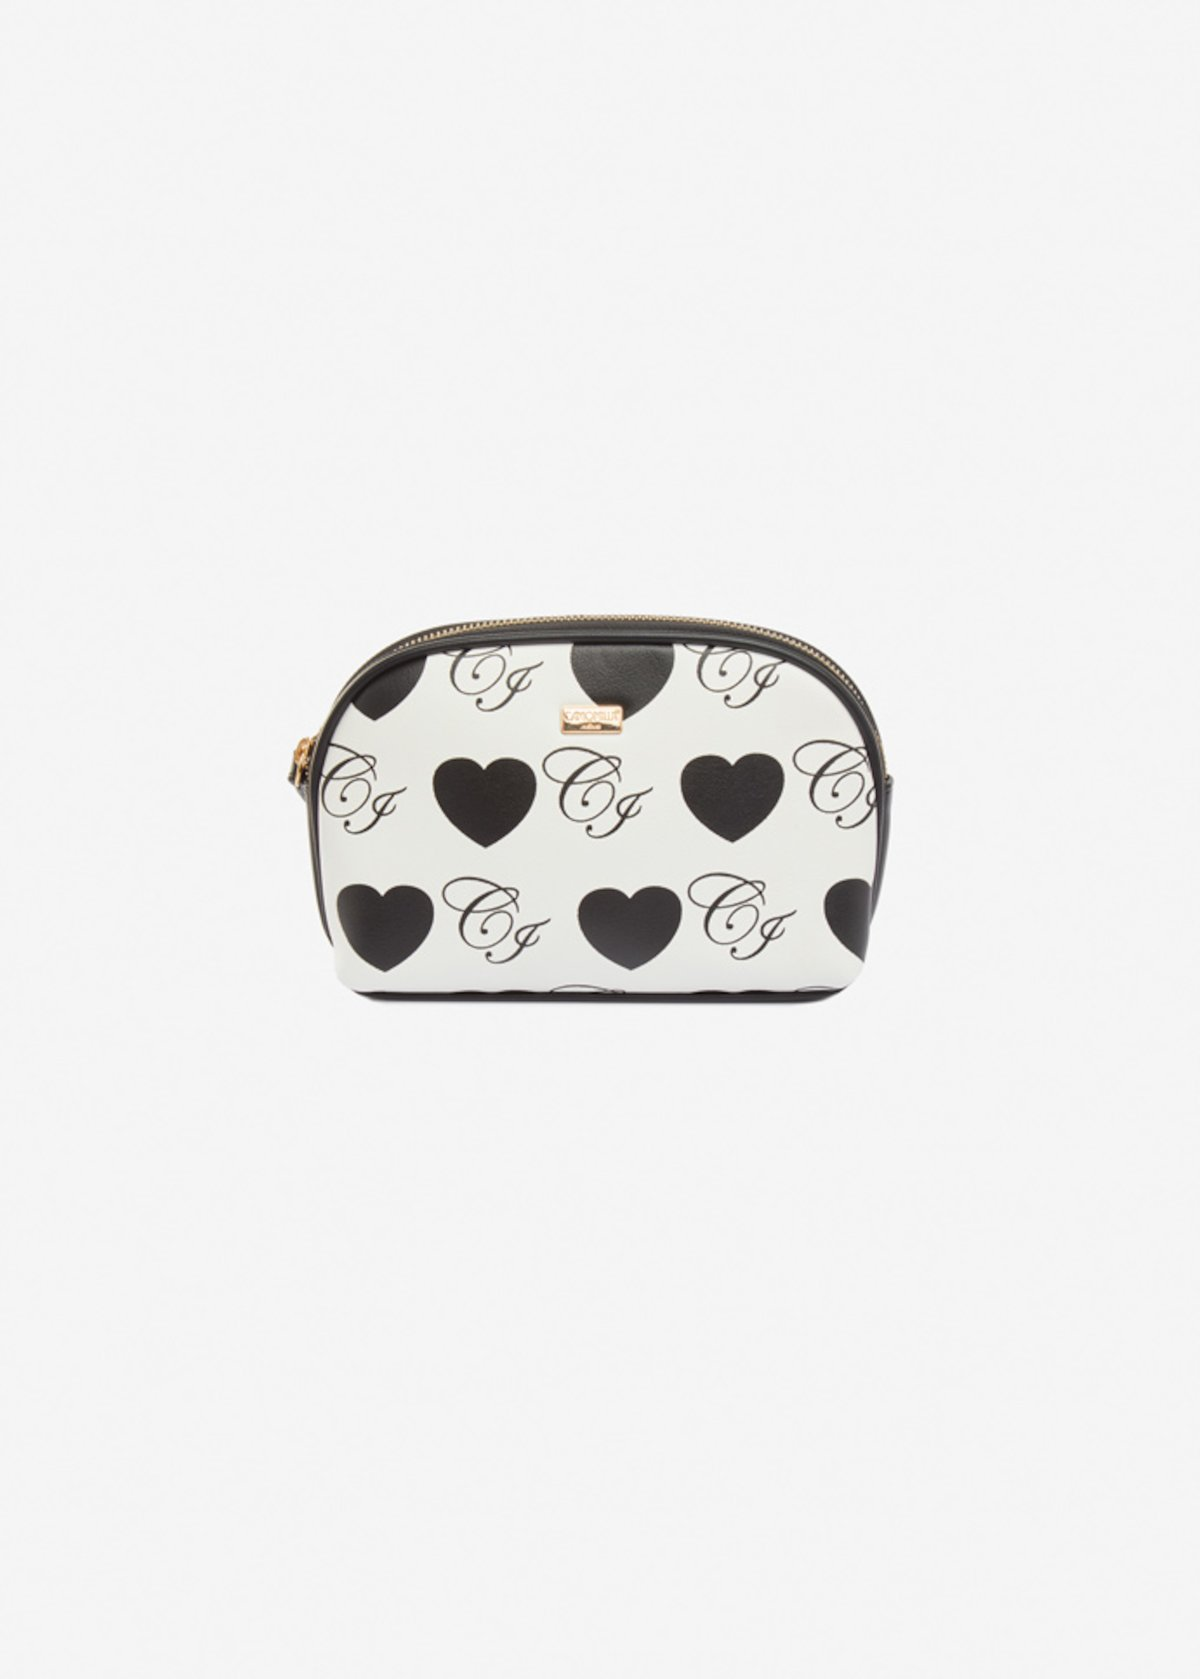 Bertrada faux-leather beauty case with hearts print - White Black Fantasia